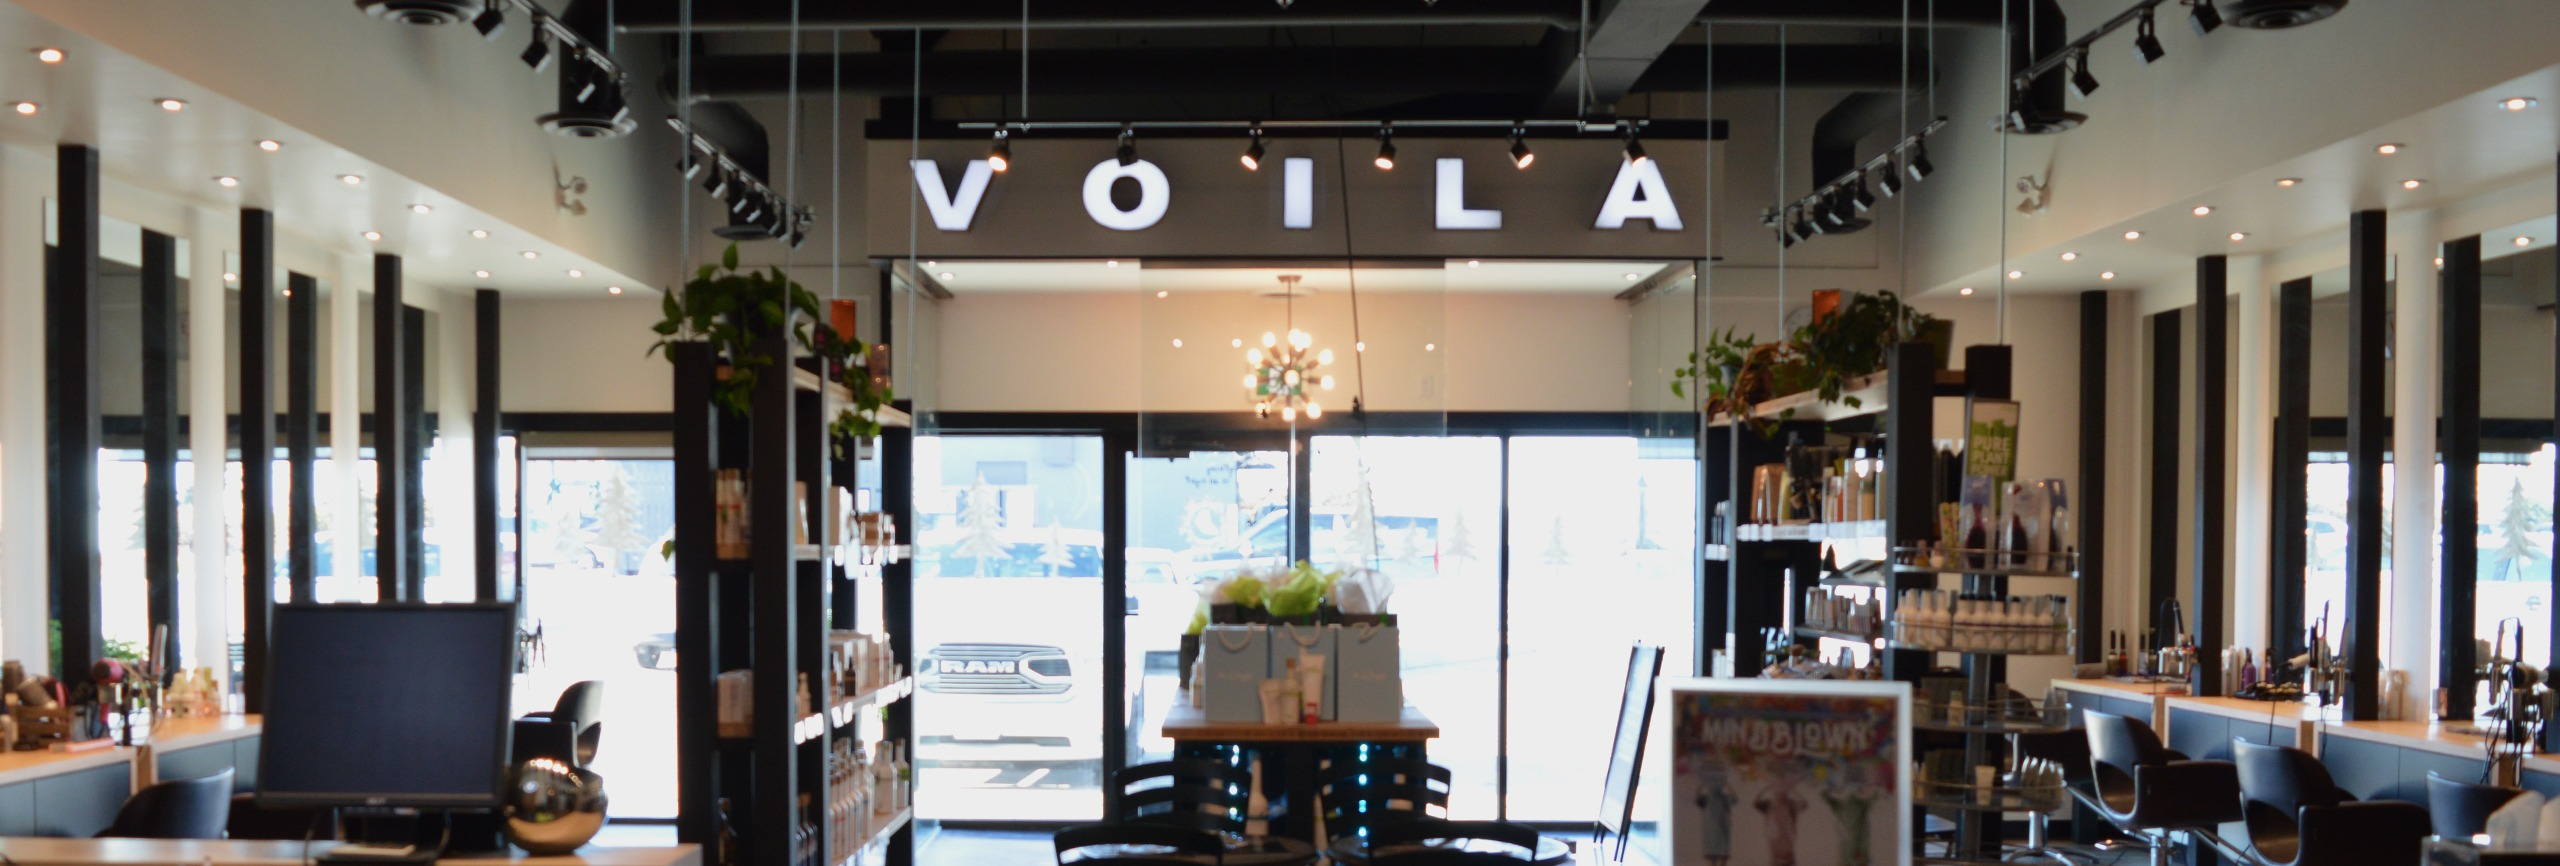 Our hair culture voila the best hair salon spa in - Voila institute of hair design kitchener ...